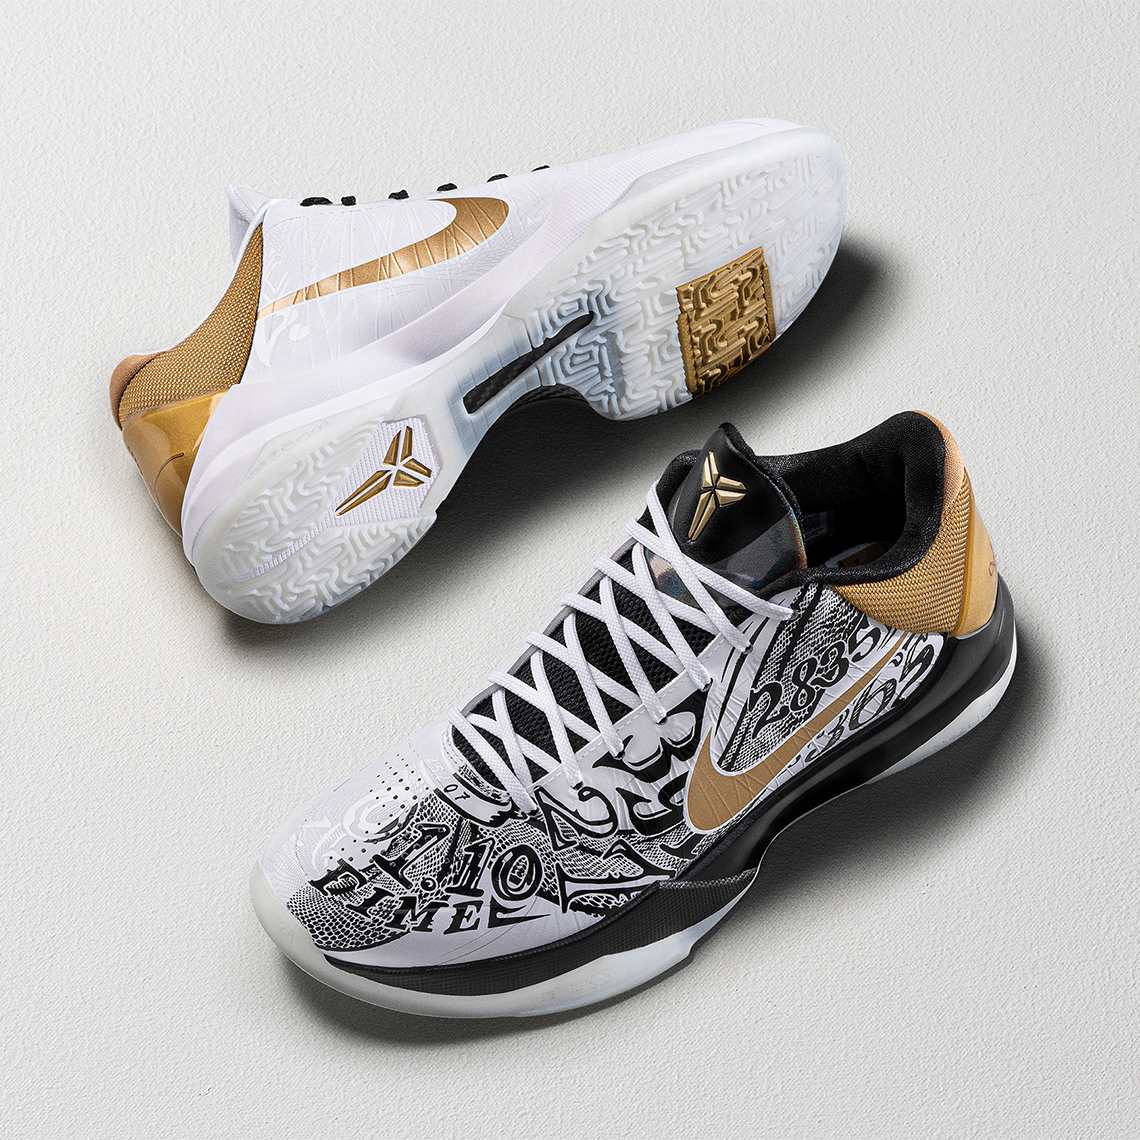 nike-kobe-5-protro-big-stage-mamba-week